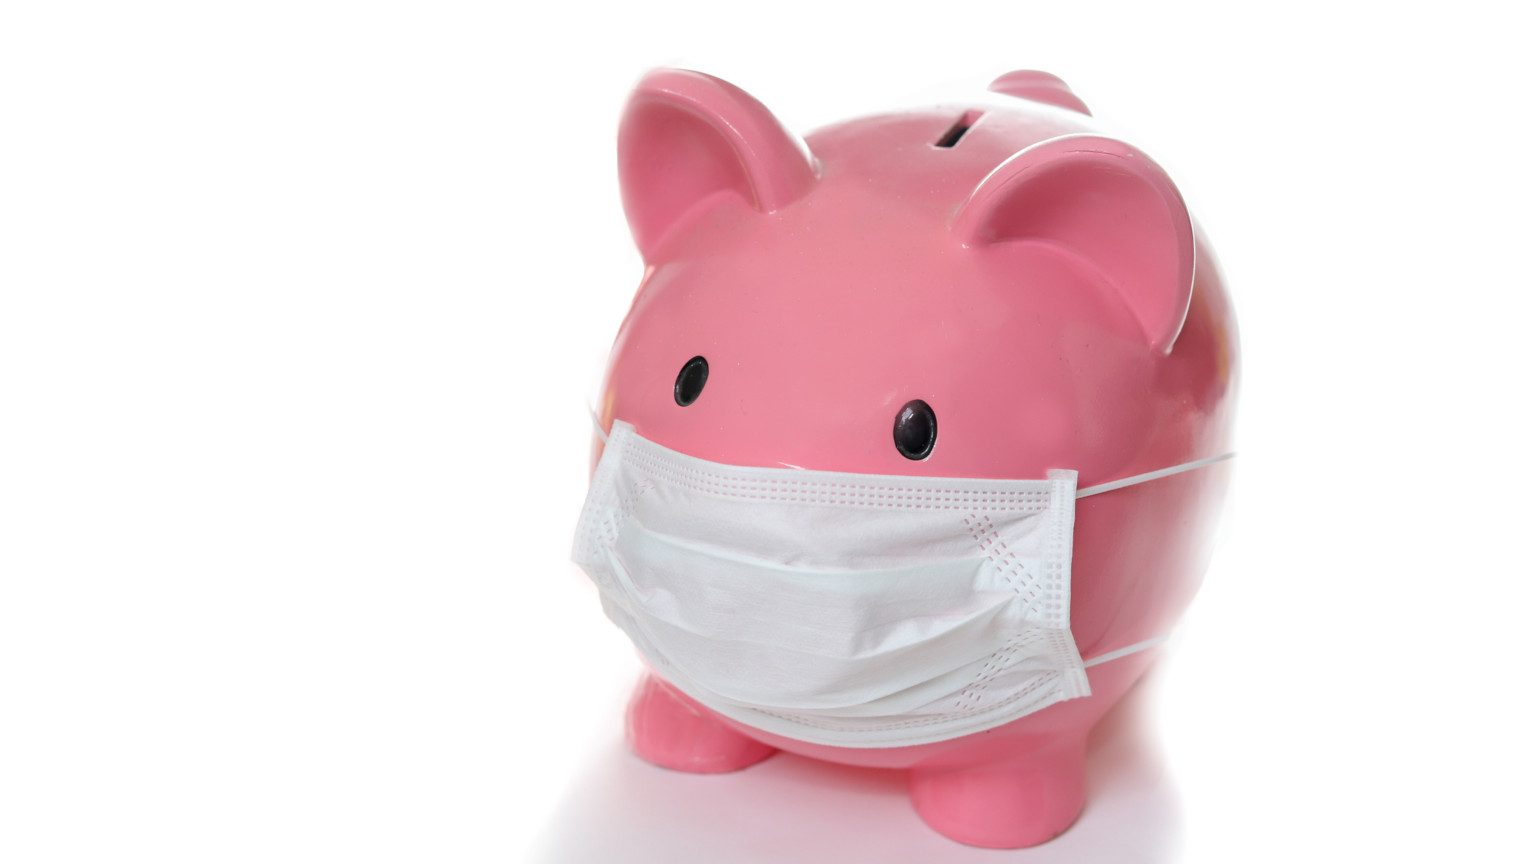 Piggy bank wearing a medical mask